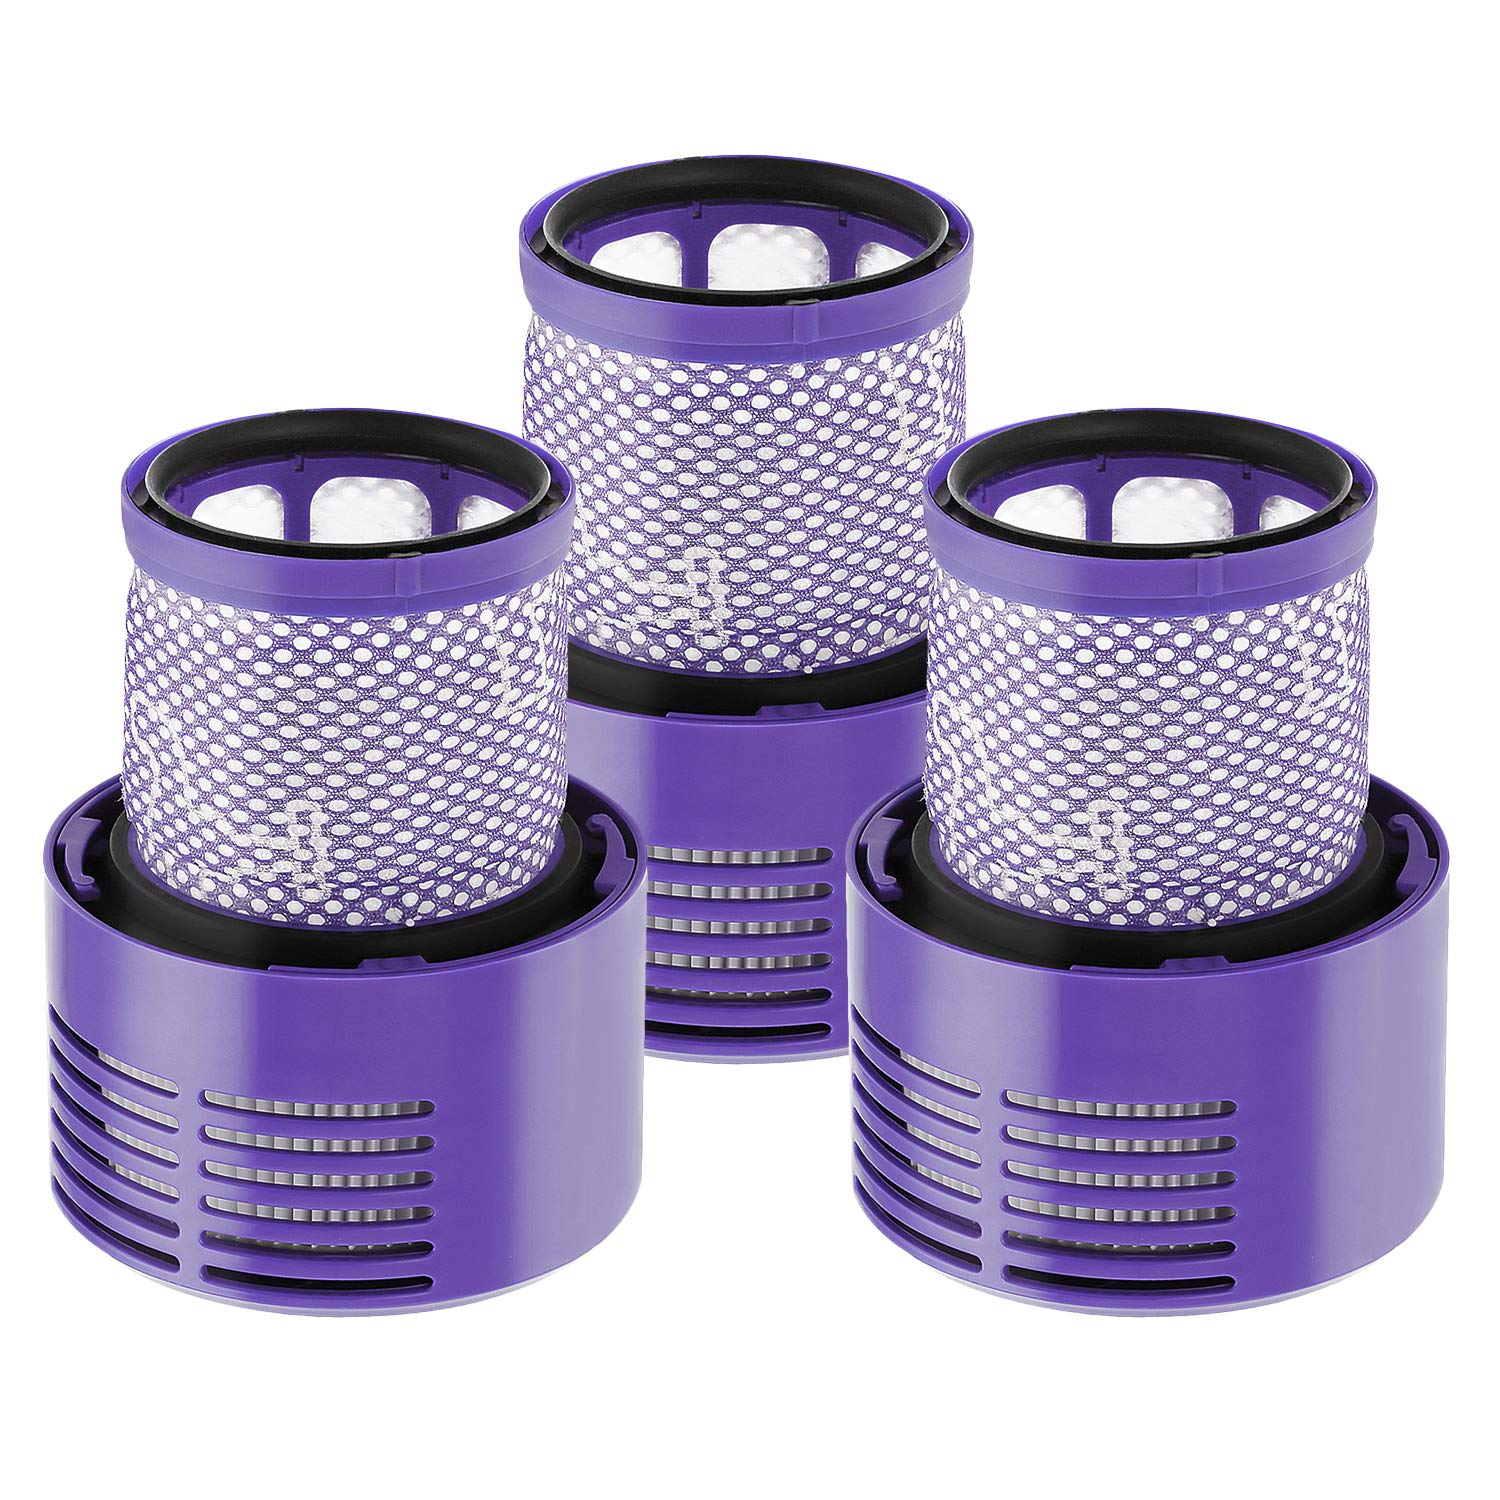 isinlive 3 Pack Vacuum Filter Replacement for Dyson V10 Series, Replaces Part # 969082-01, Compatible Dyson Cyclone V10 Absolute Animal Motorhead Total Clean